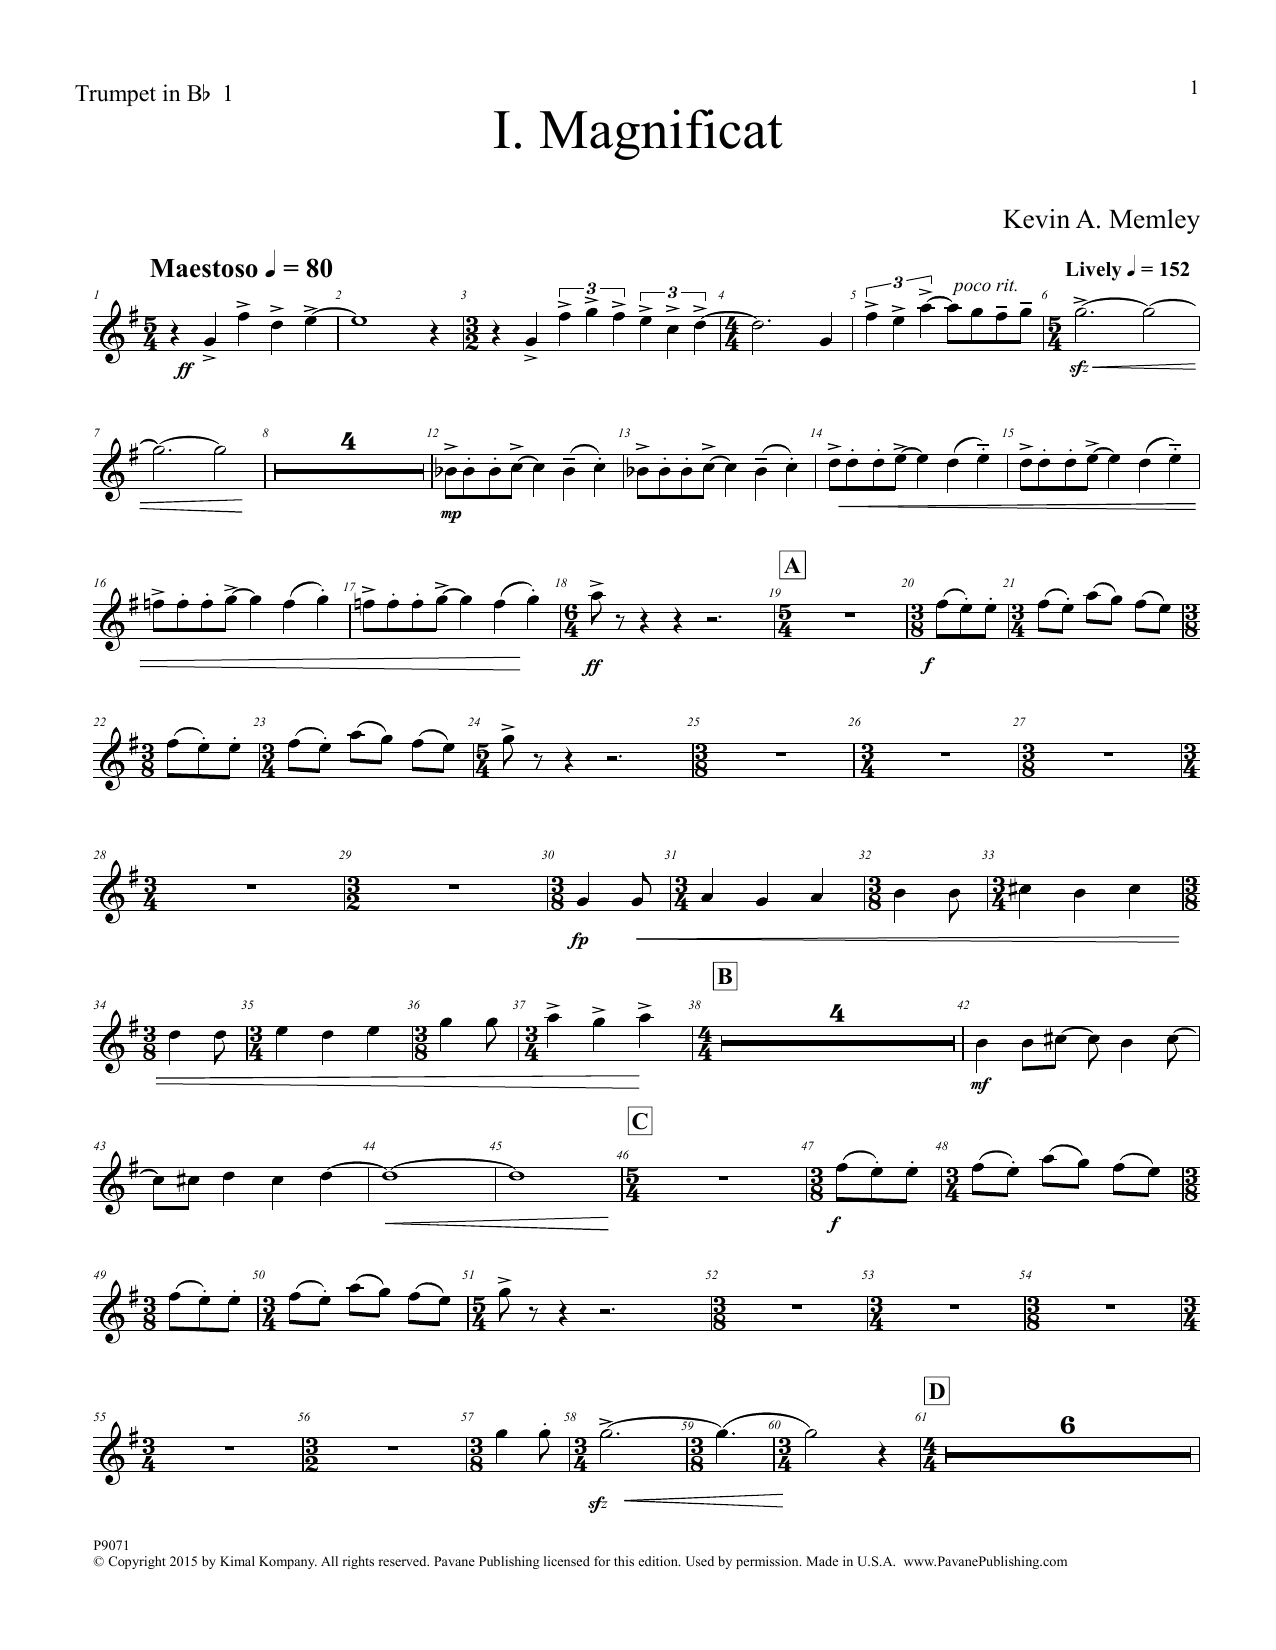 Magnificat - Trumpet 1 in Bb Sheet Music